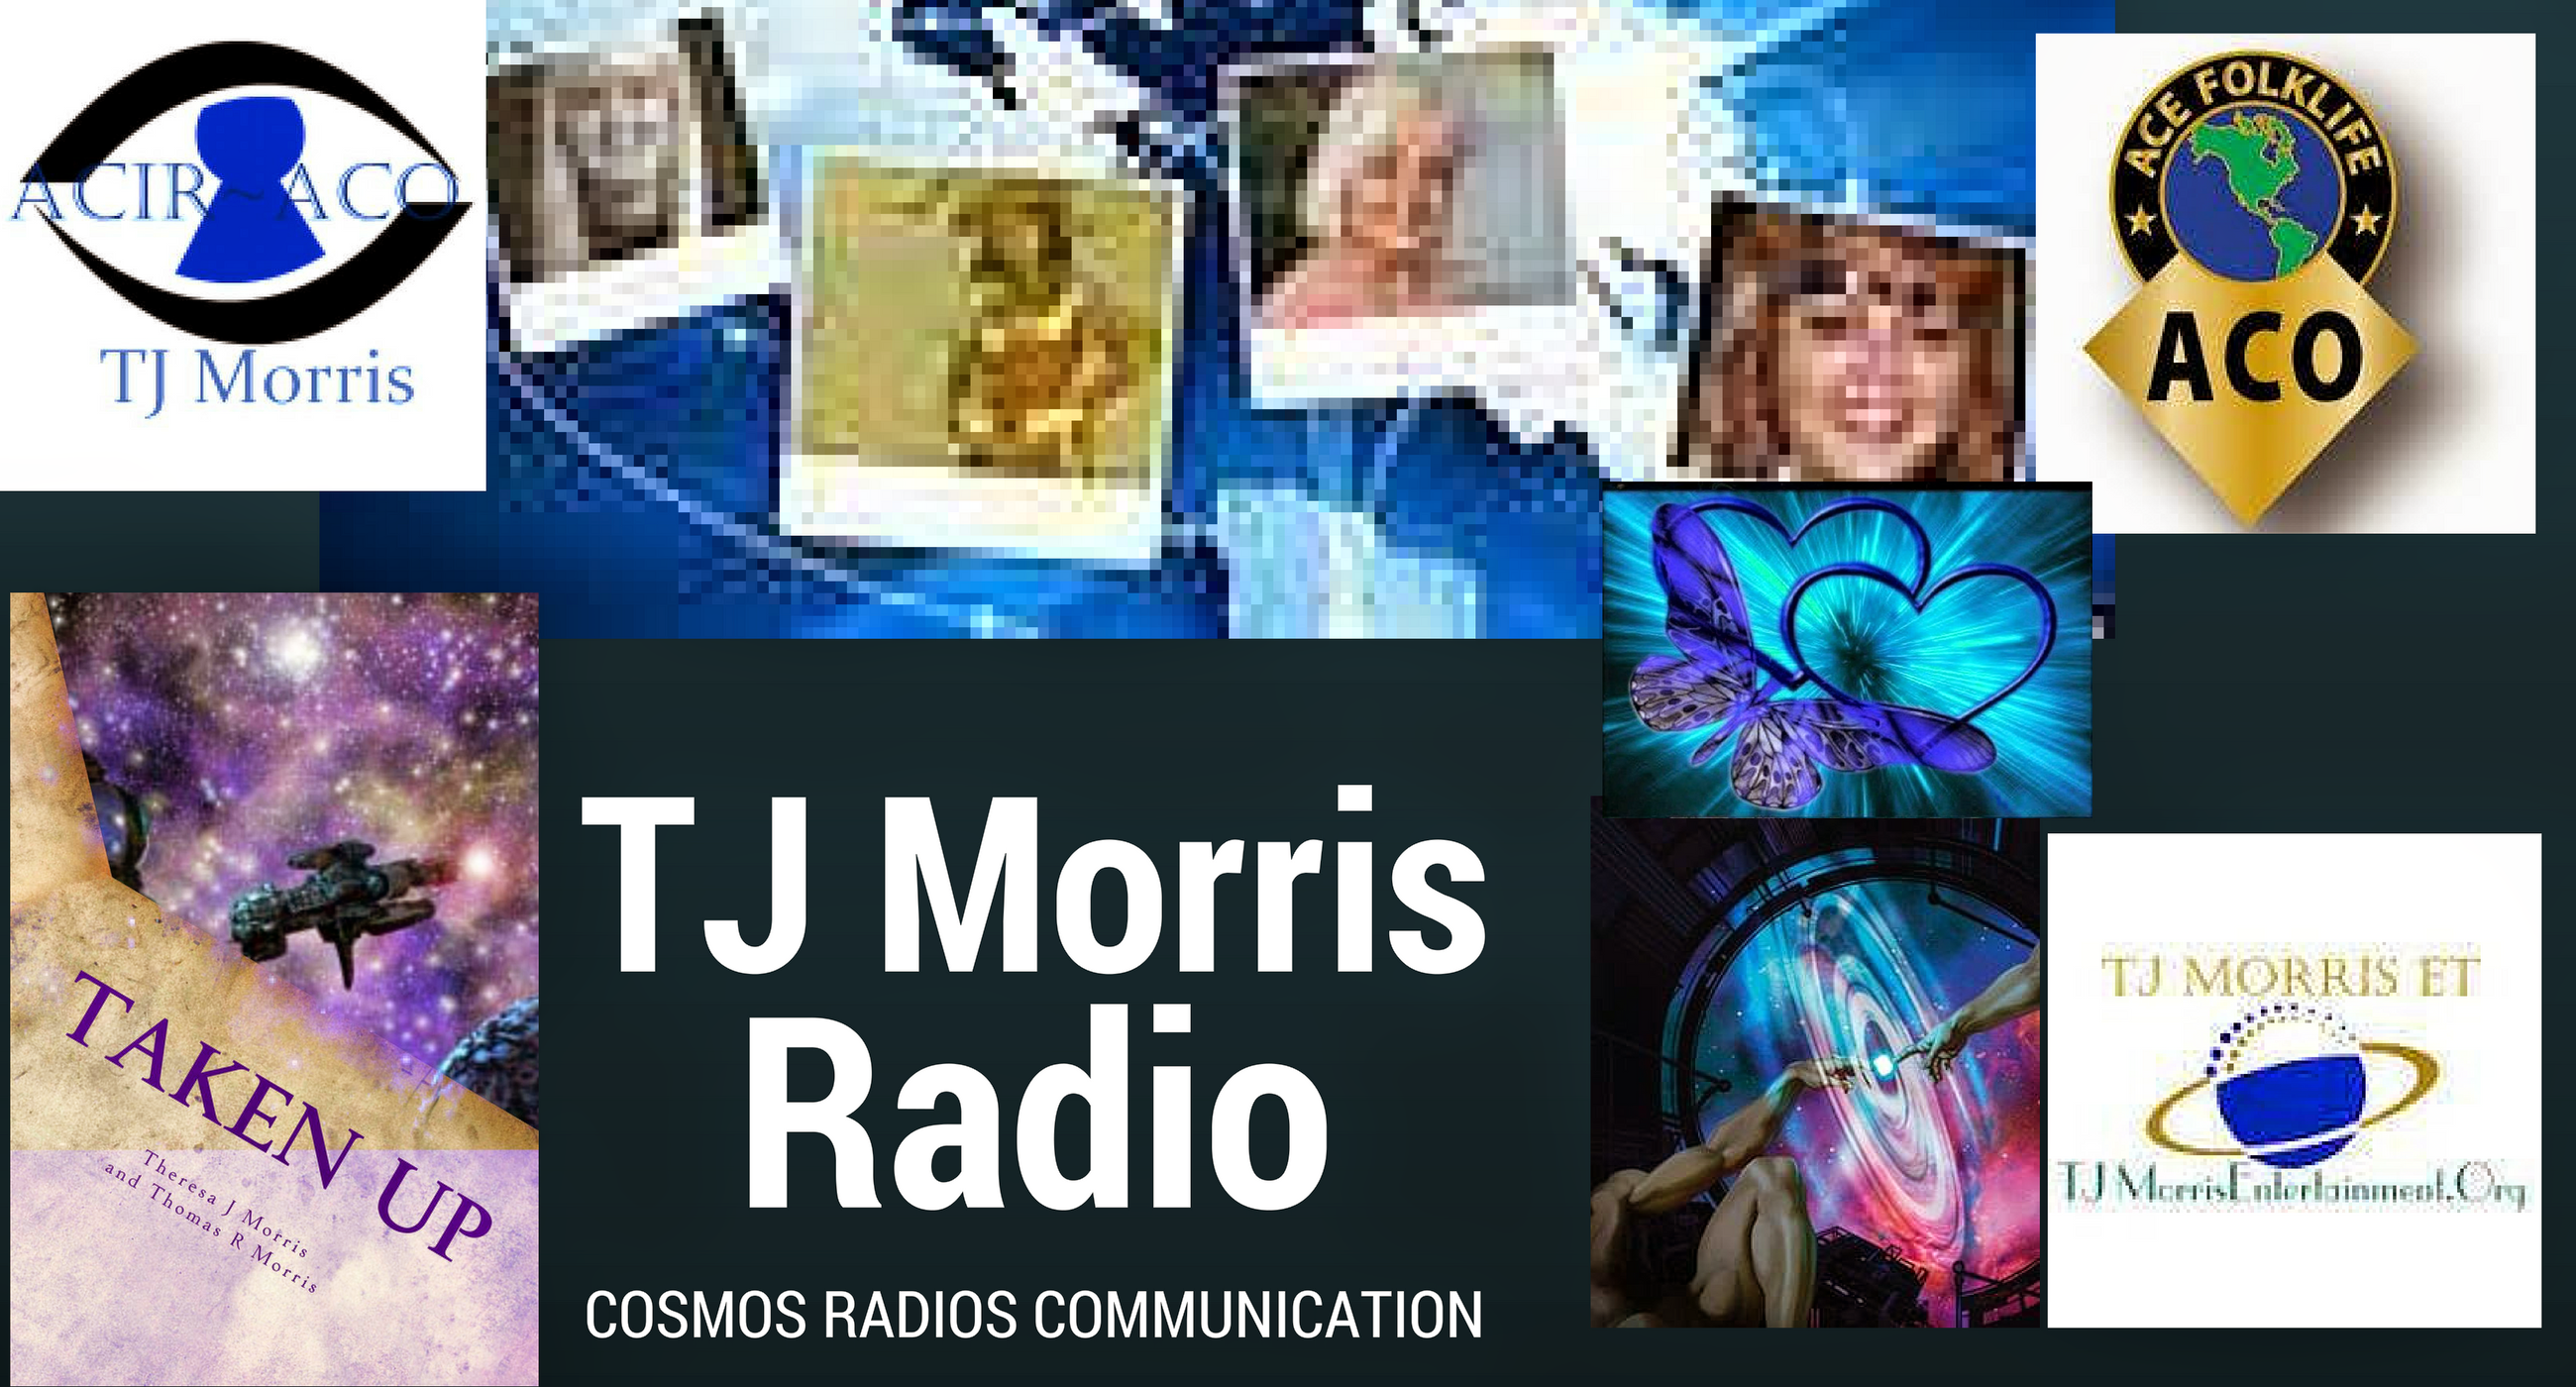 tj-morris-radio-copy-copy